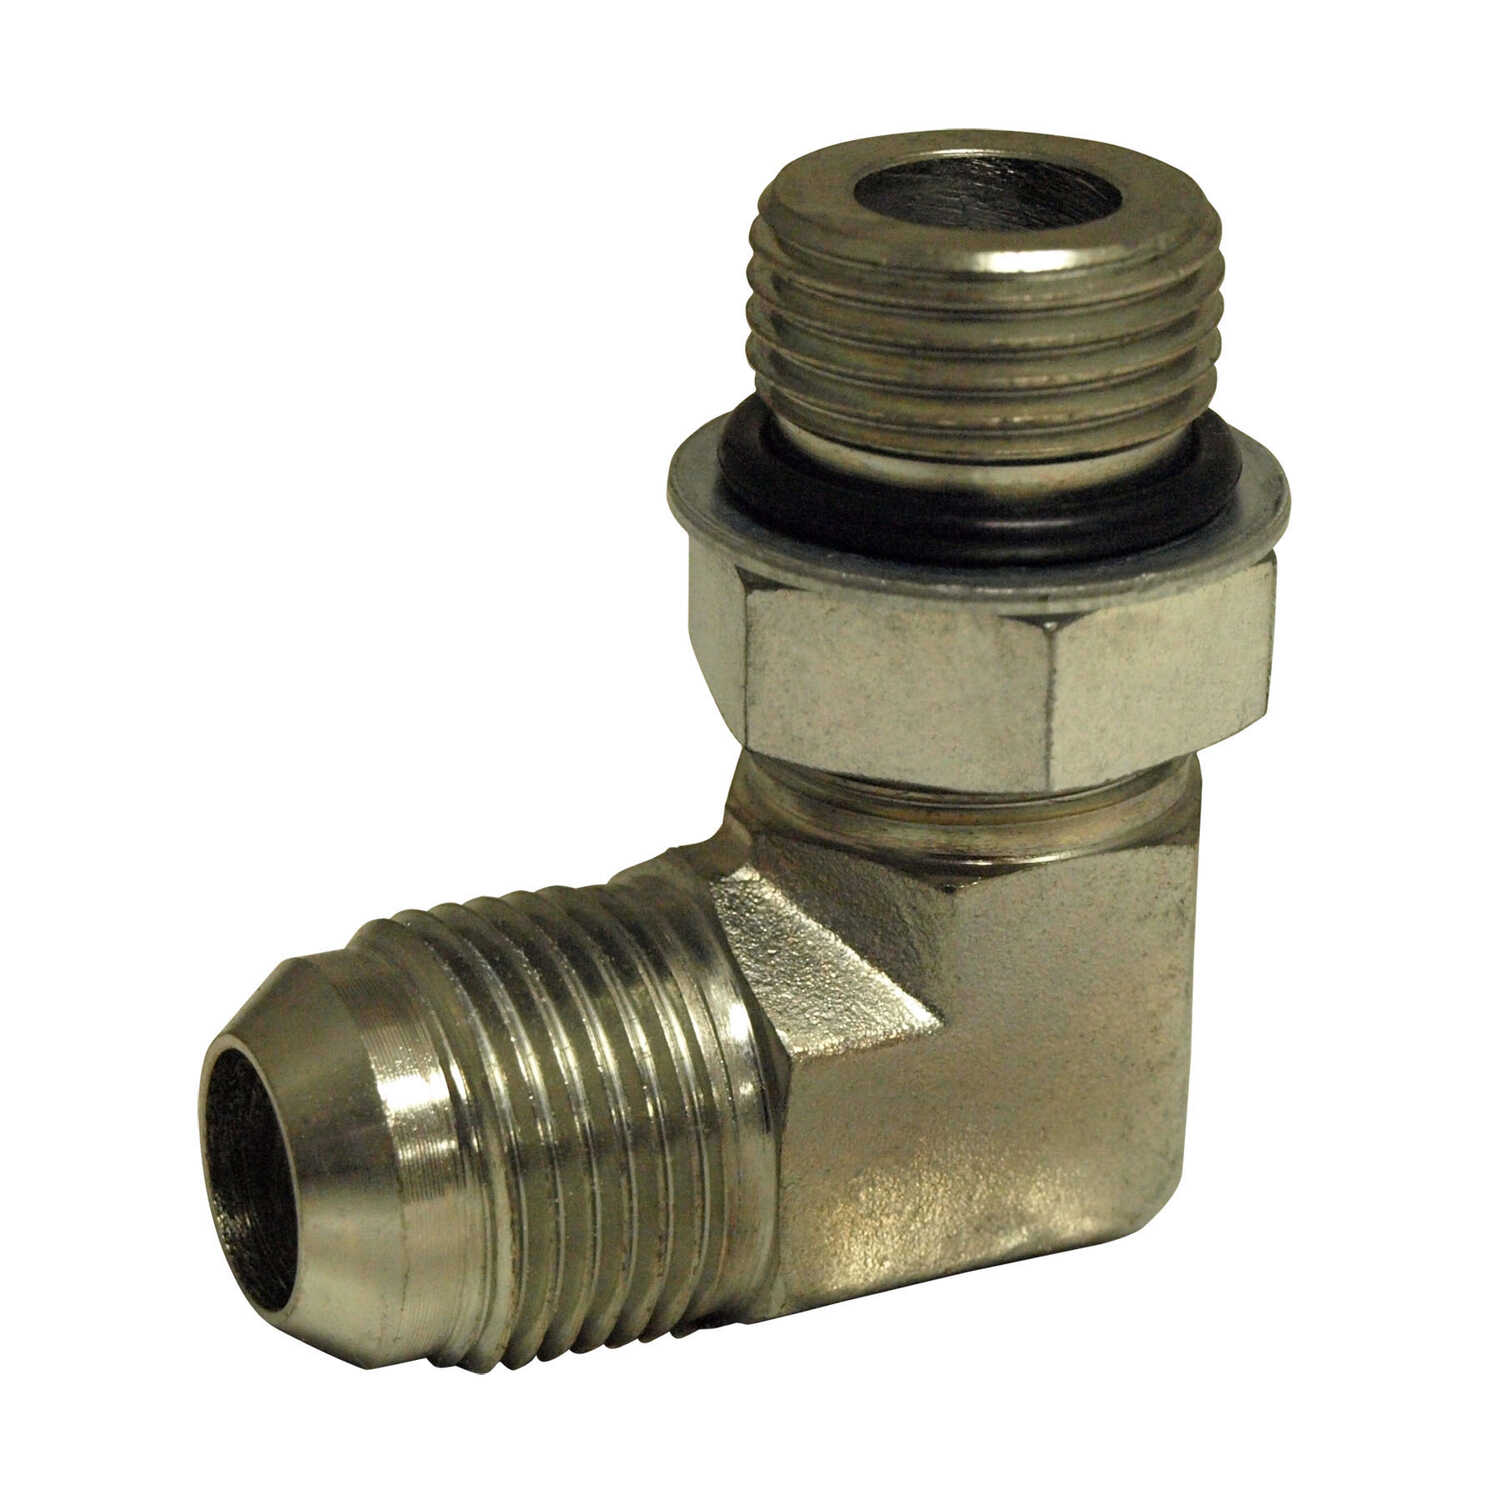 Apache  Steel  Hydraulic Adapter  3/8 in. Dia. x 1/2 in. Dia. 1 pk